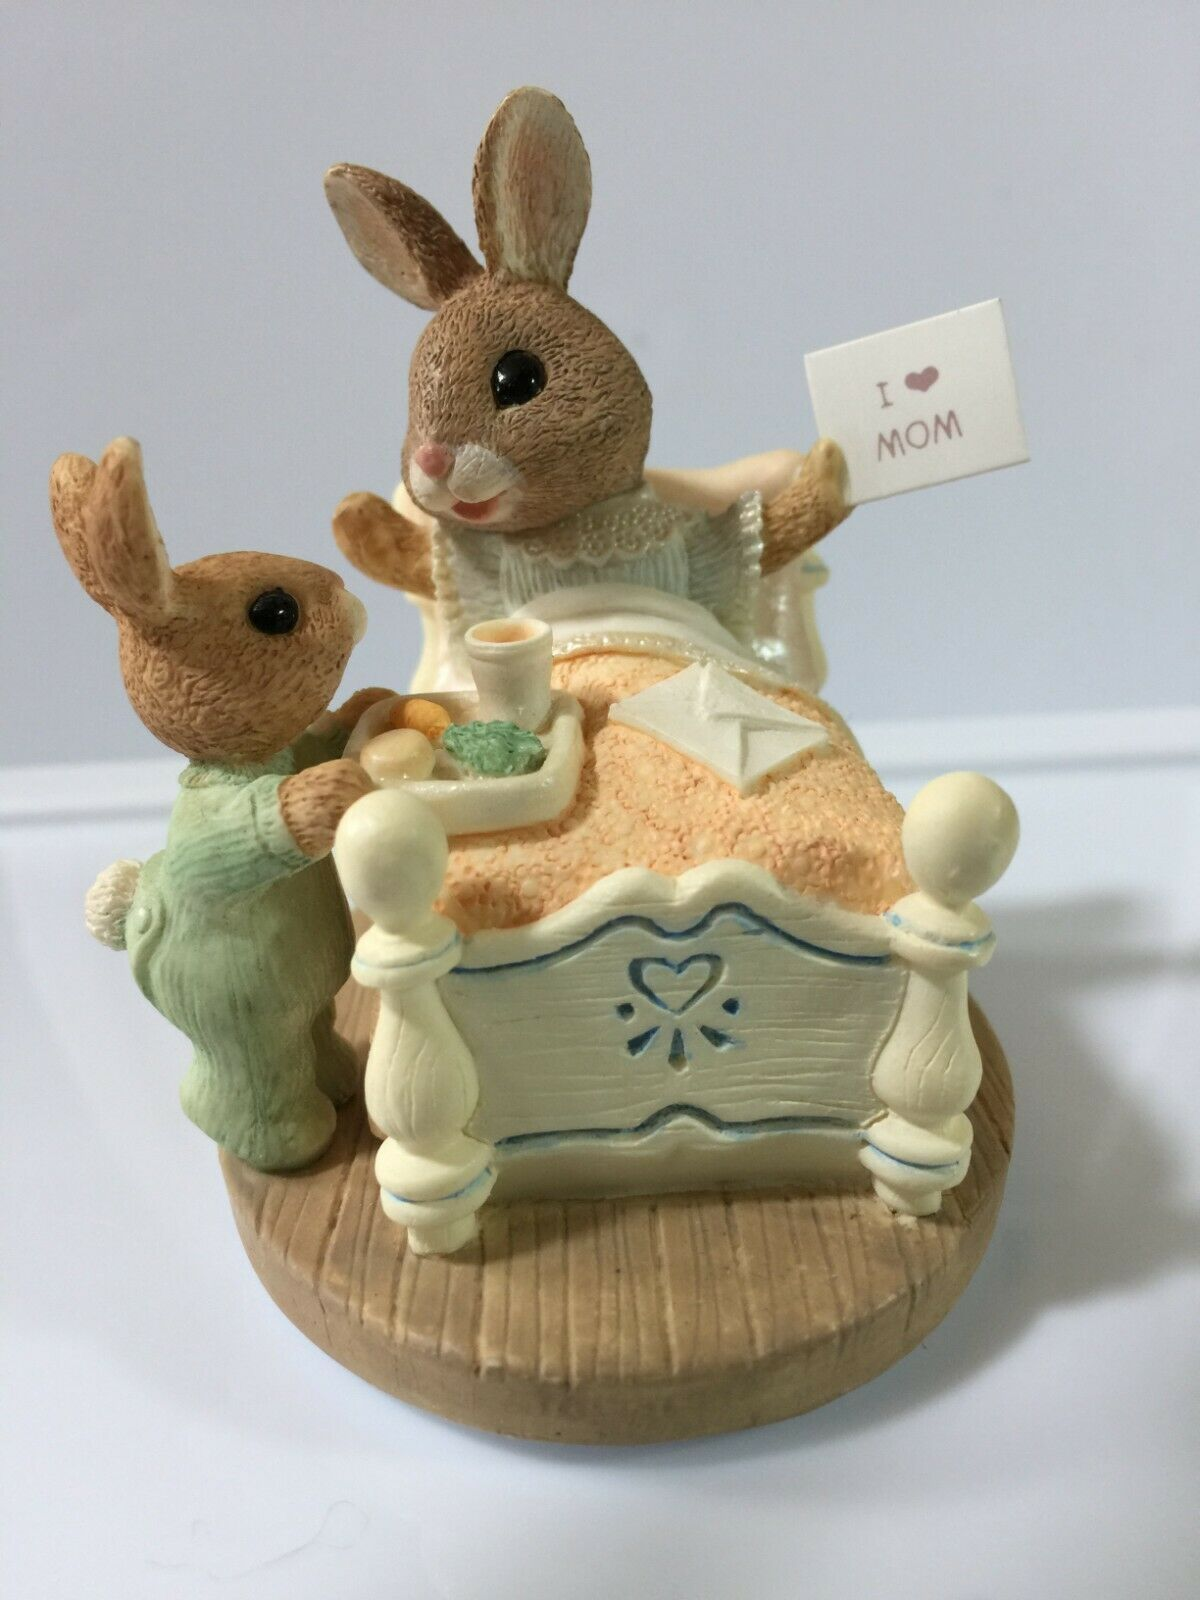 Breakfast in Bed - Tender Touches Figurine